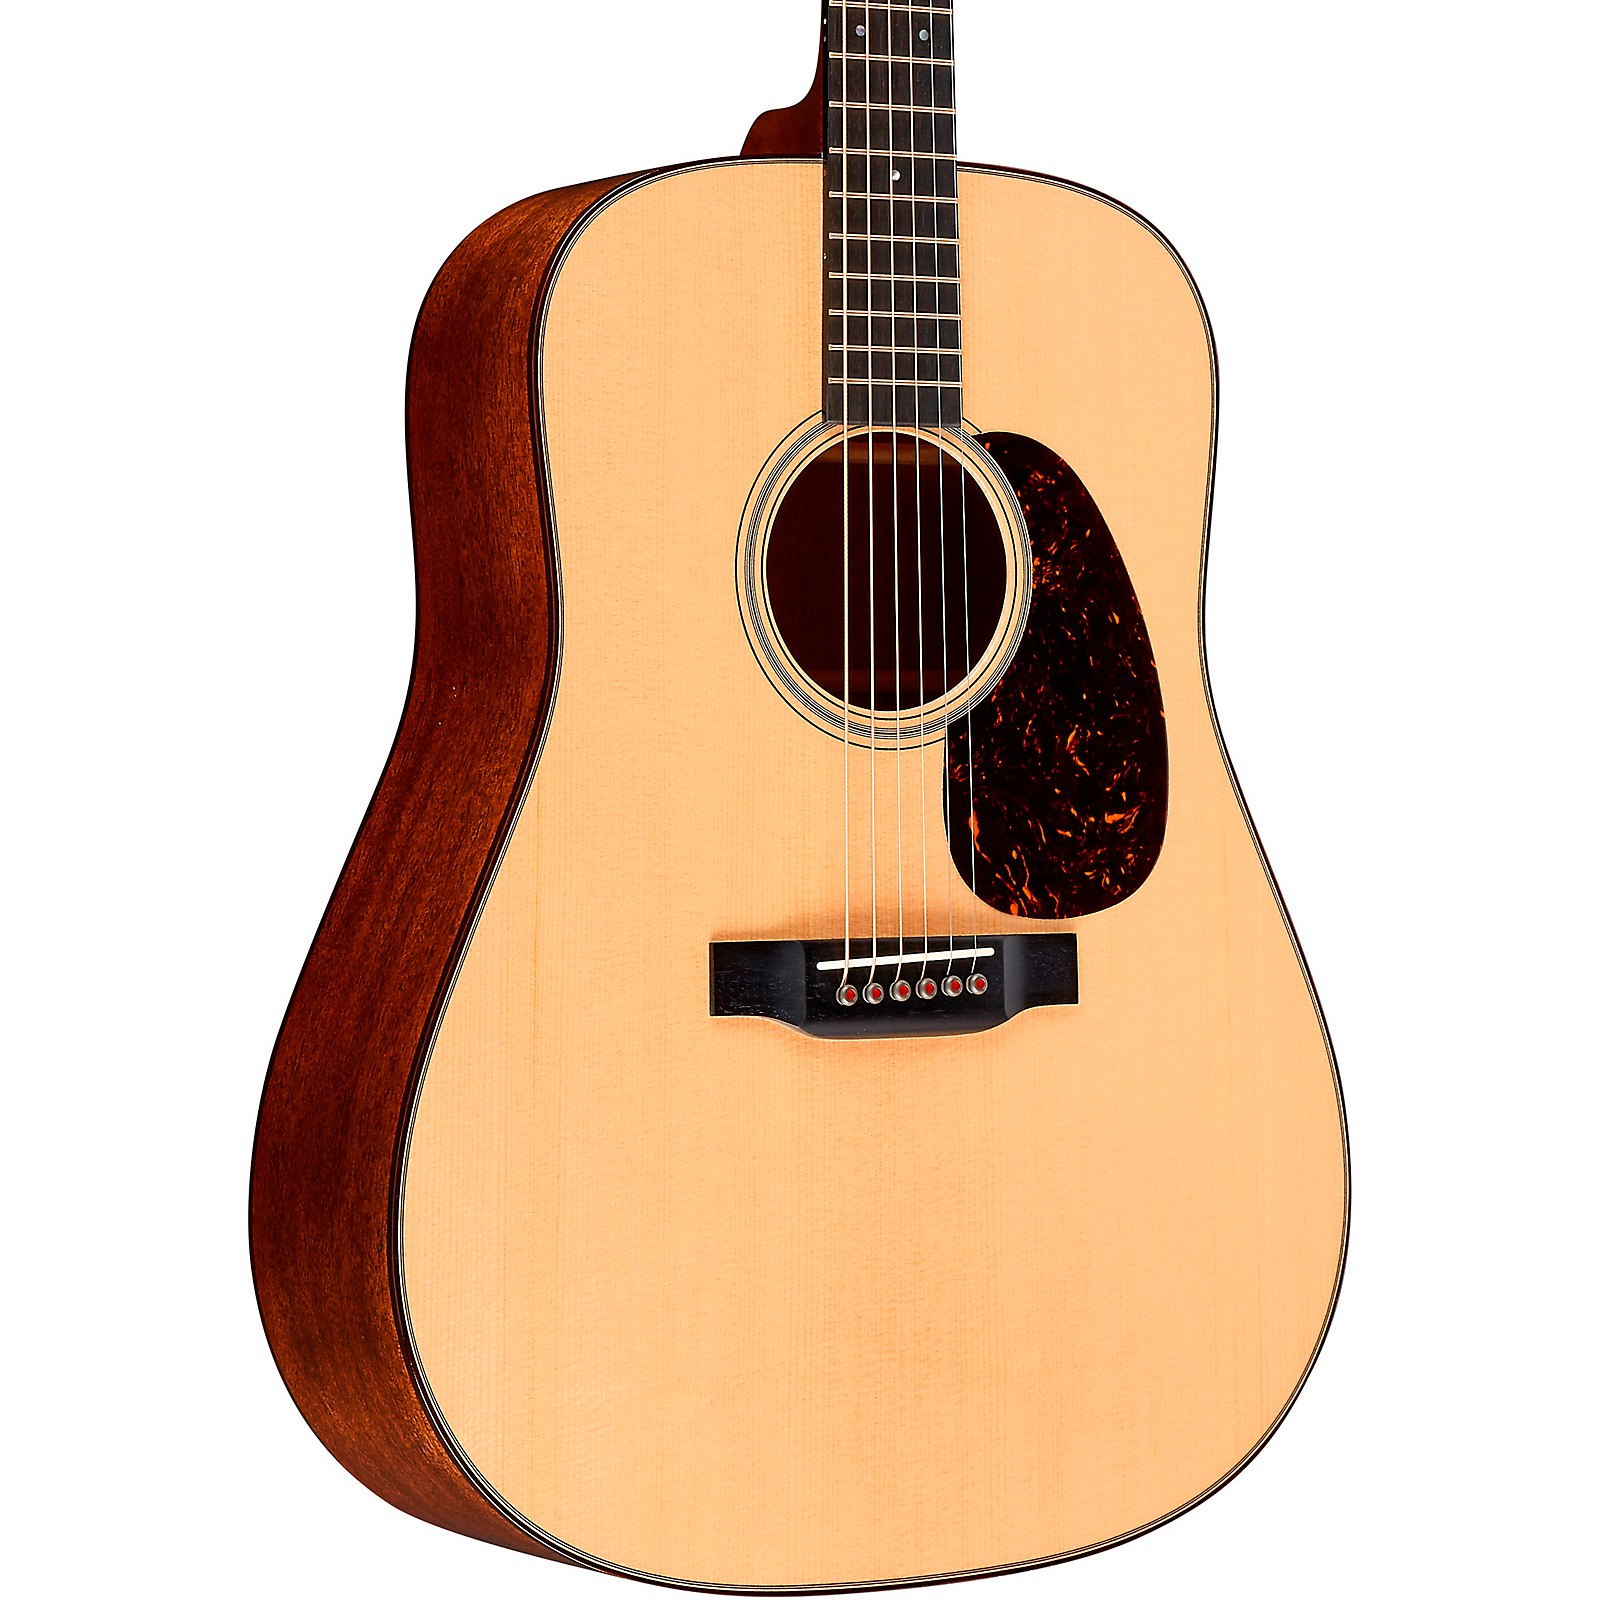 Martin D-18 Modern Deluxe Dreadnought Acoustic Guitar